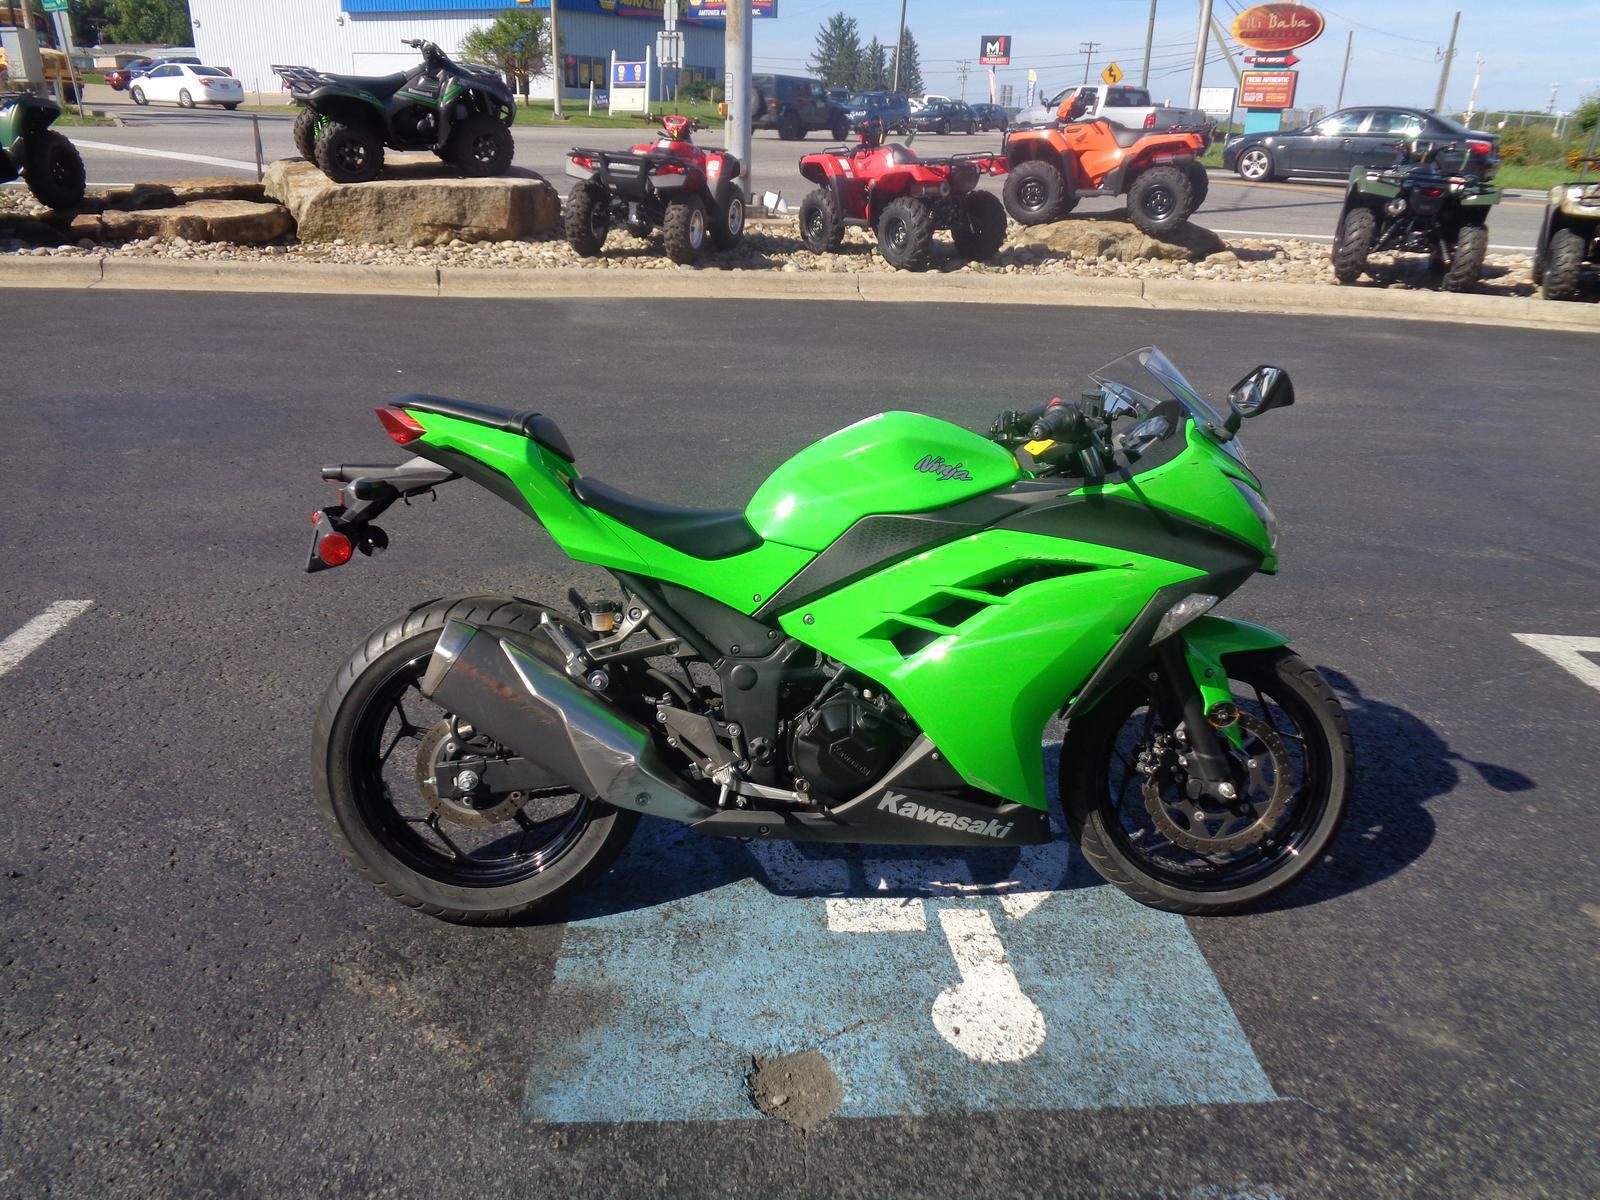 2015 Kawasaki Ninja 300 For Sale In Morgantown Wv Tarmac Full Exhaust System Carbon Fiber Dsc01895